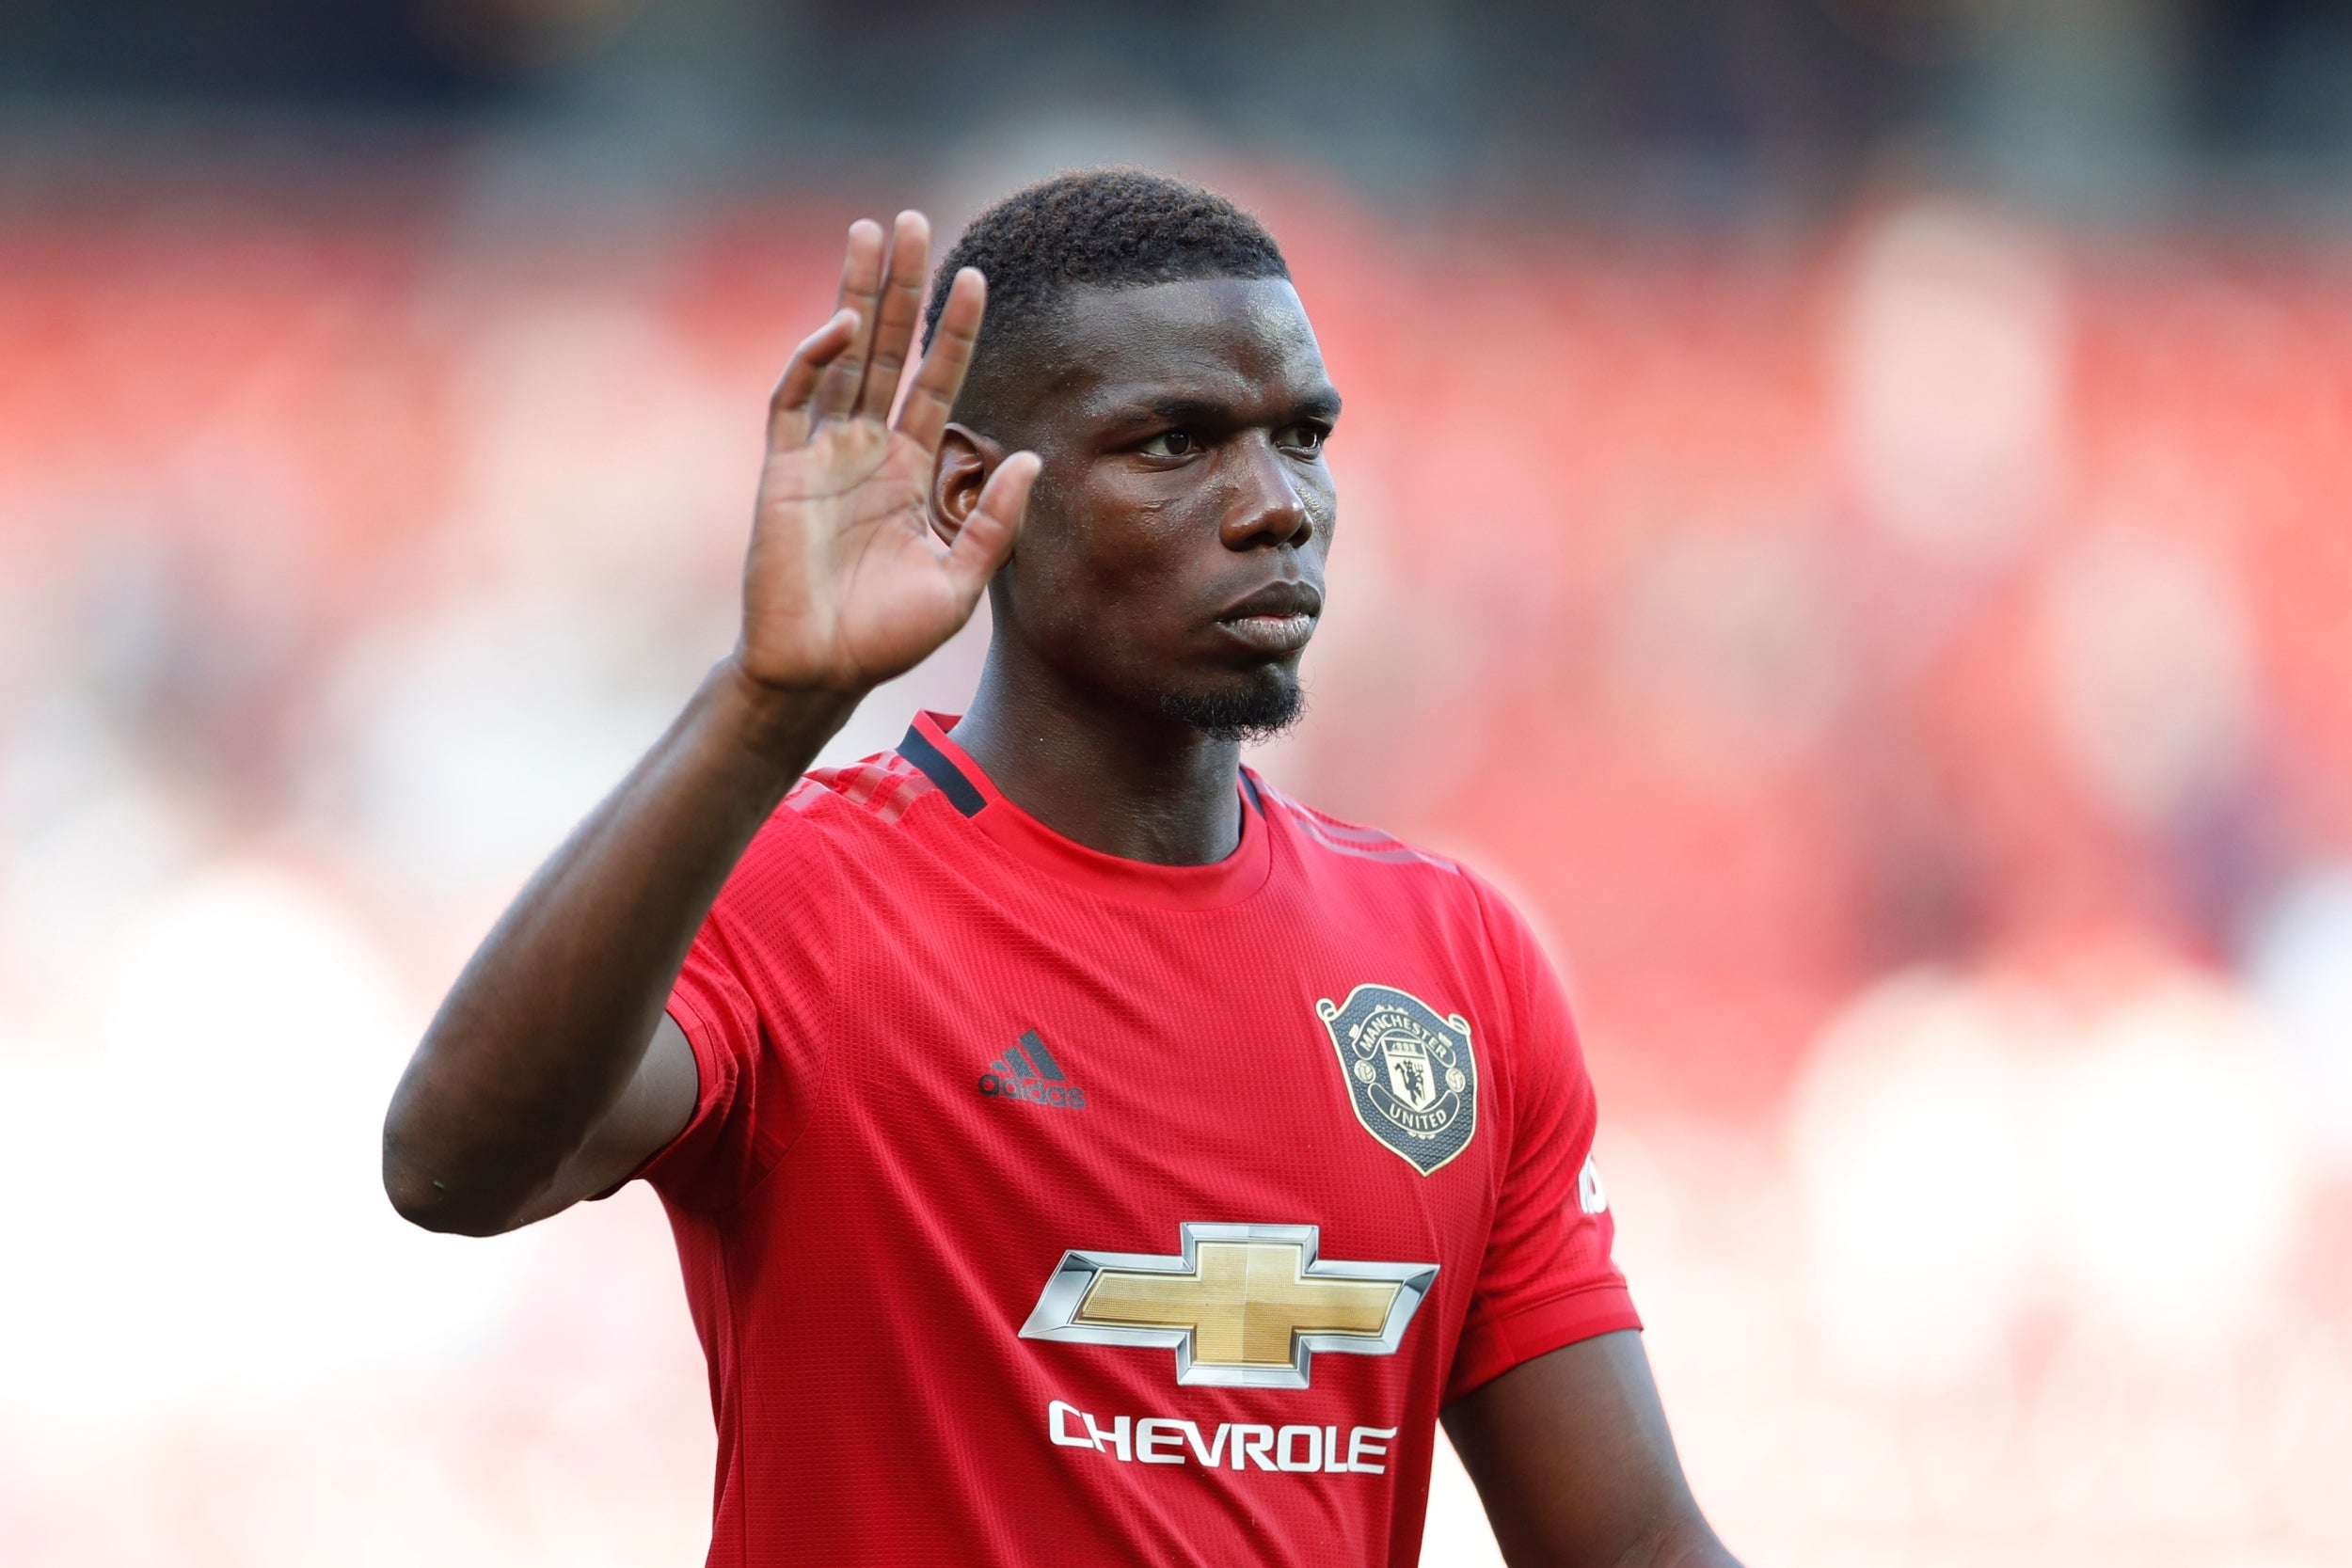 Paul Pogba won't sign new Manchester United contract offer - Euro papers - Bóng Đá